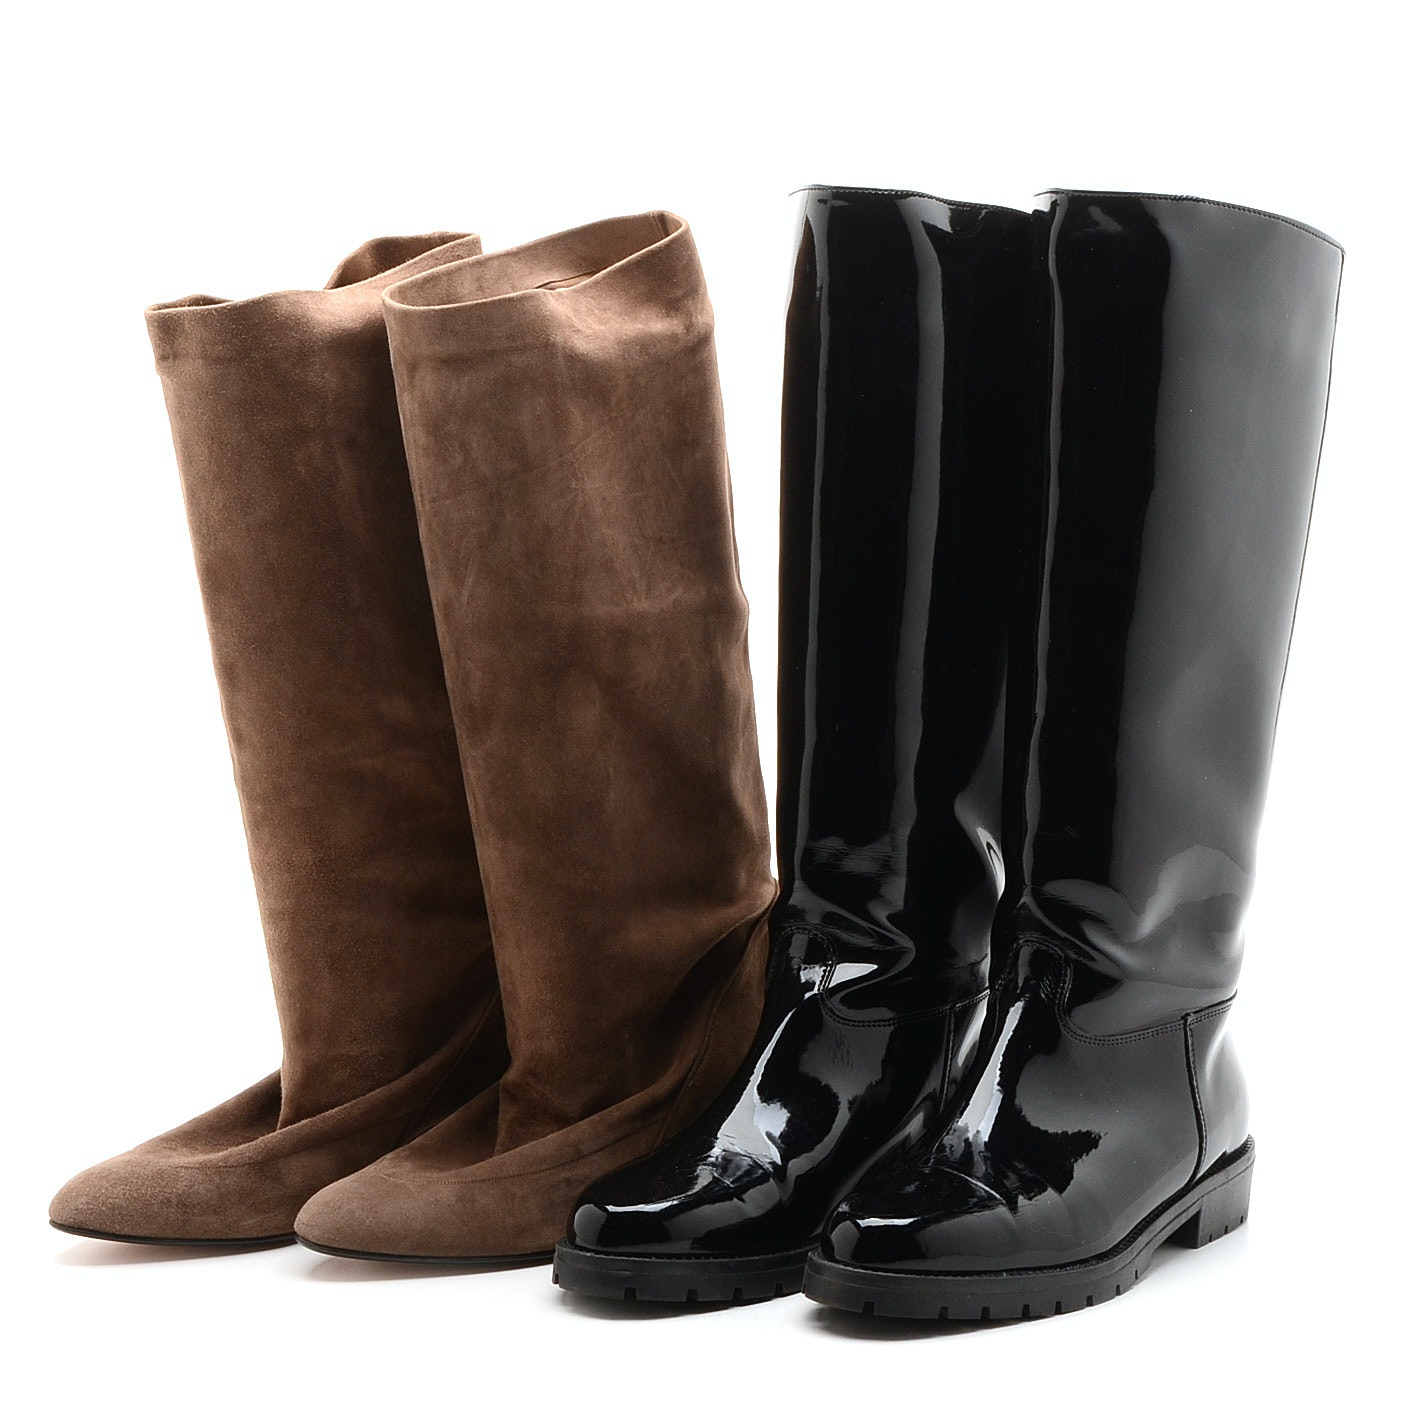 Two Pairs of Women's Vintage Boots